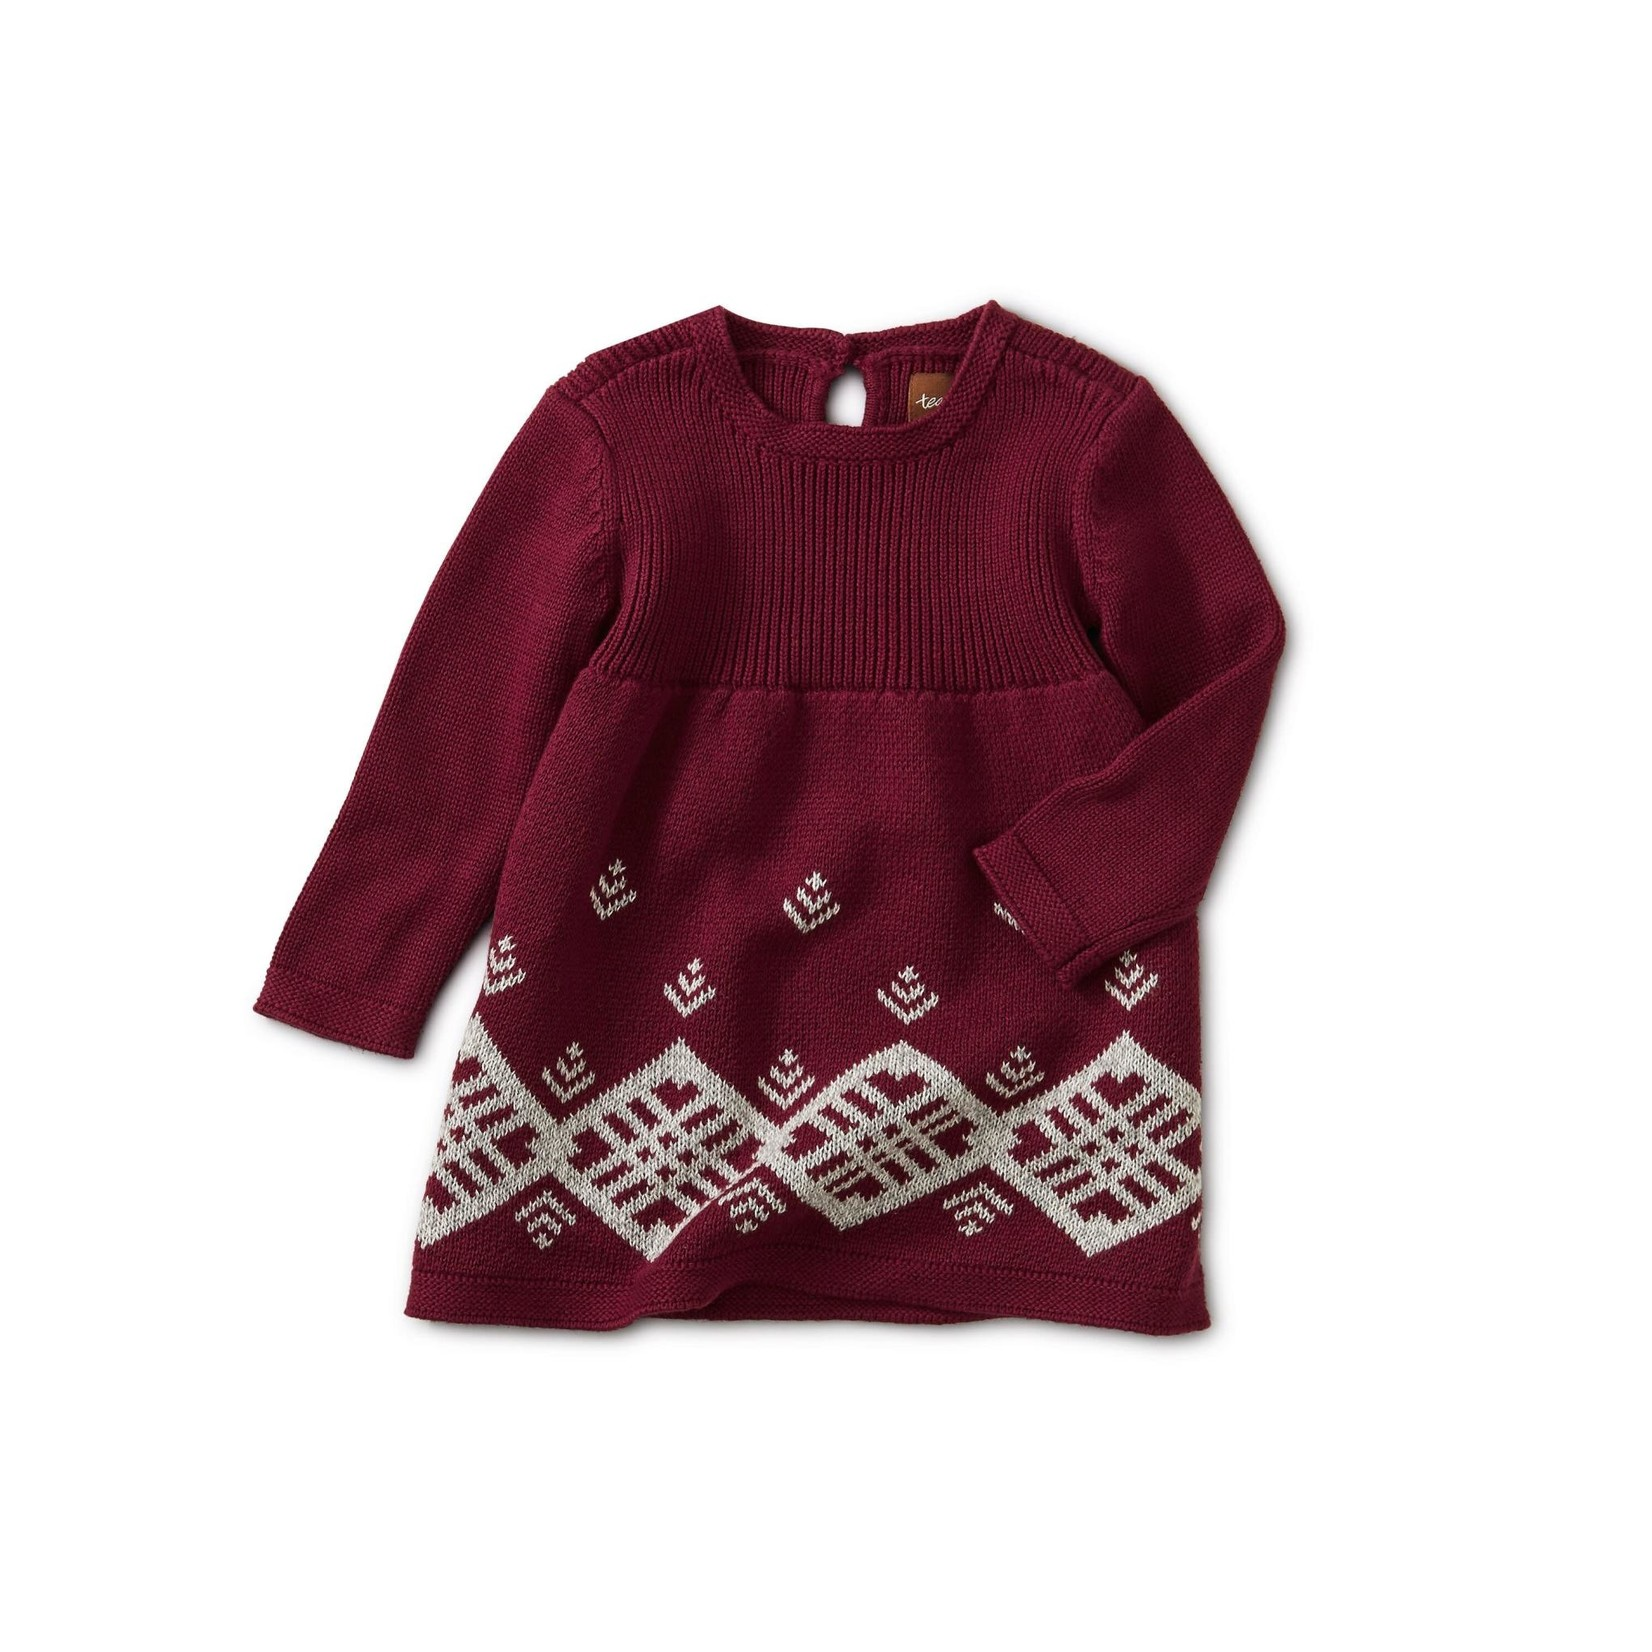 Tea Collection Chimmi Choden Family Sweater Dress - Deep Cherry  4T